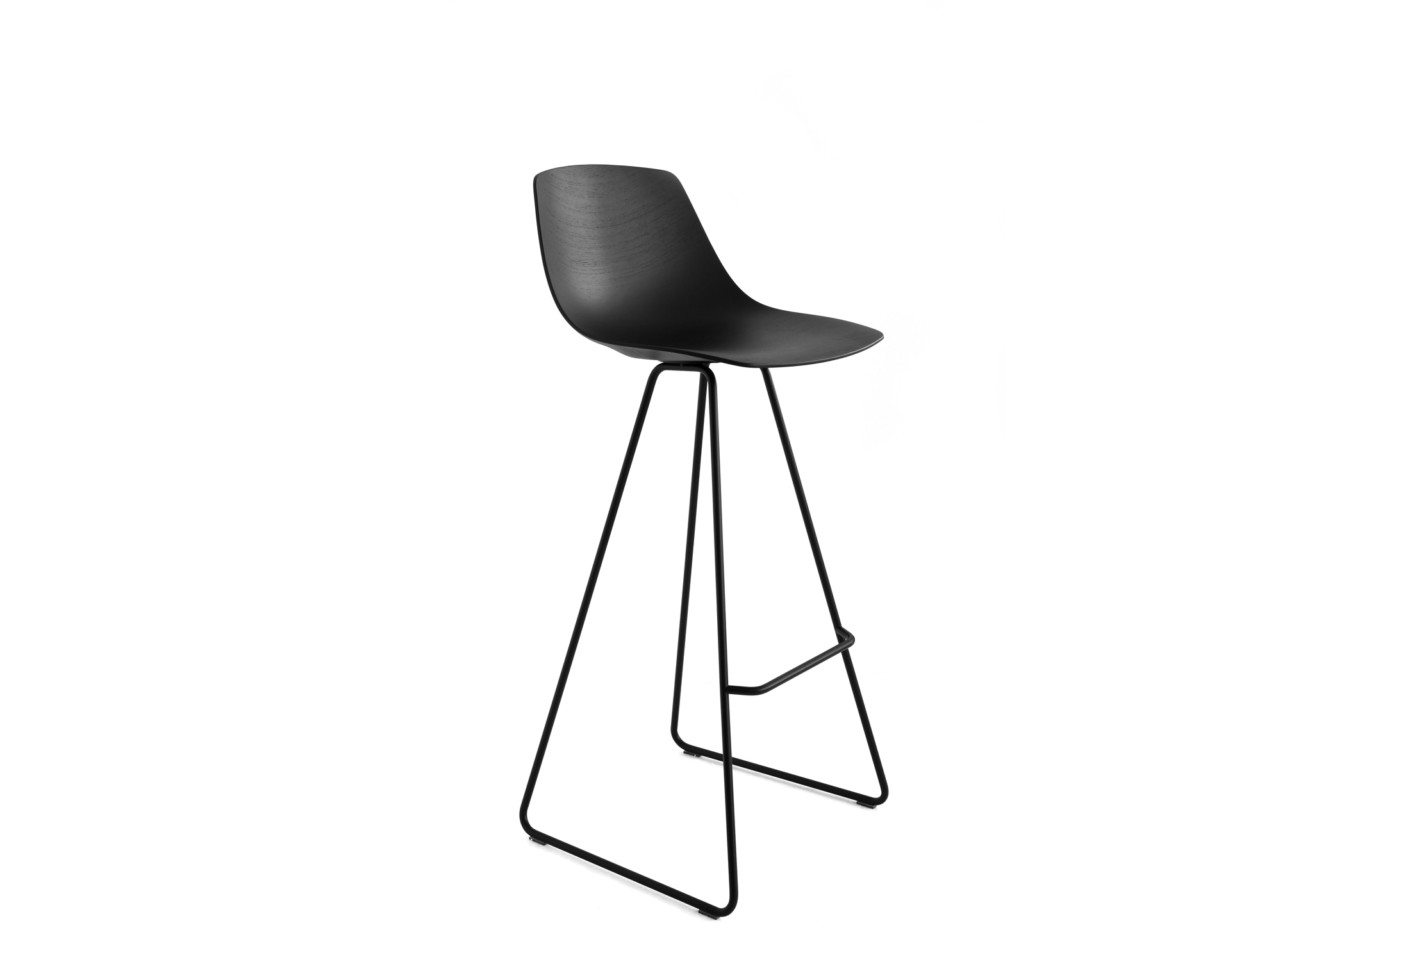 Miunn Bar Stool By Lapalma Stylepark